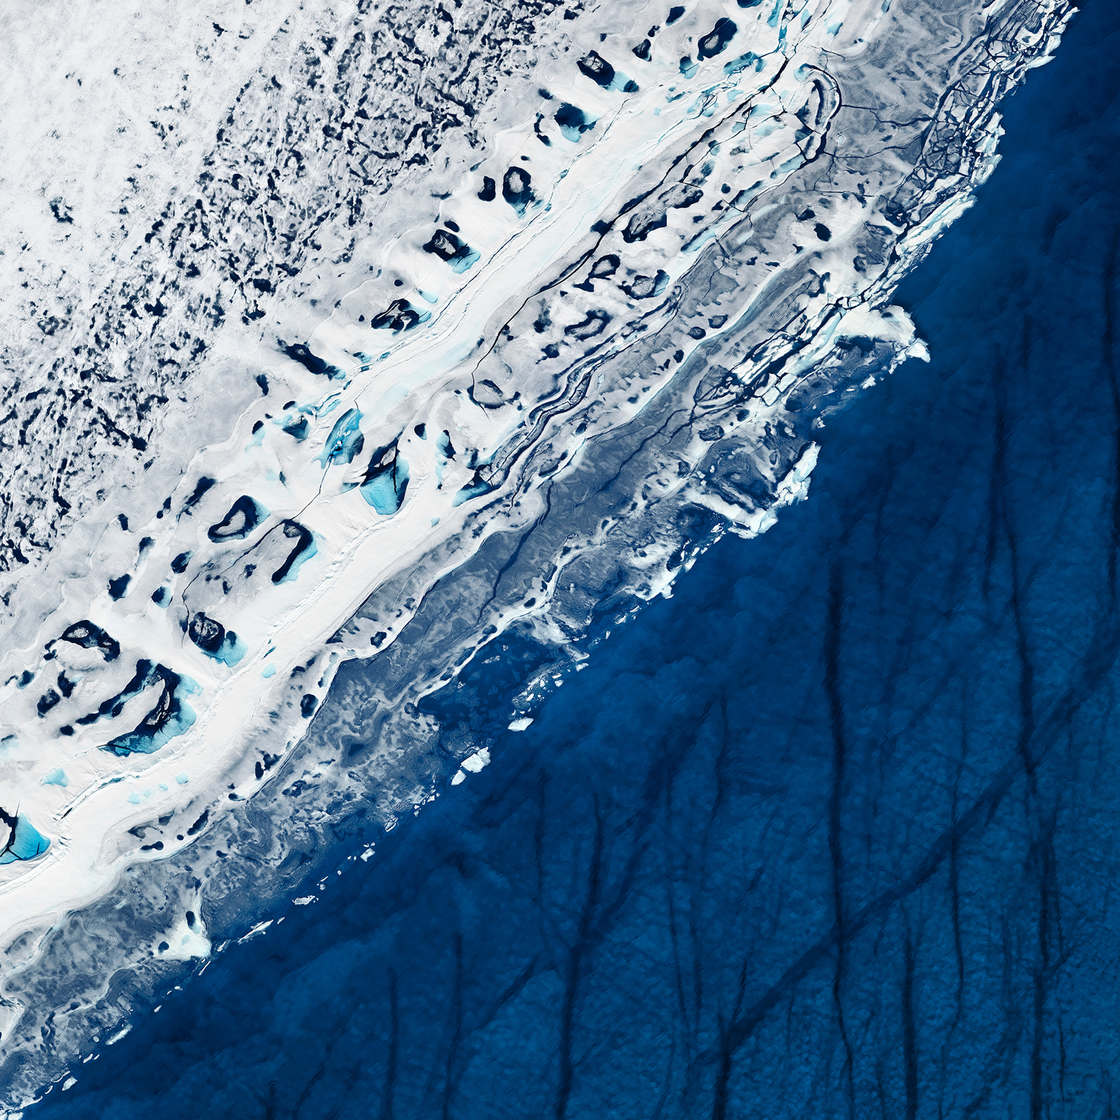 White and Blue - Timo Lieber captures the fragile beauty of the Arctic